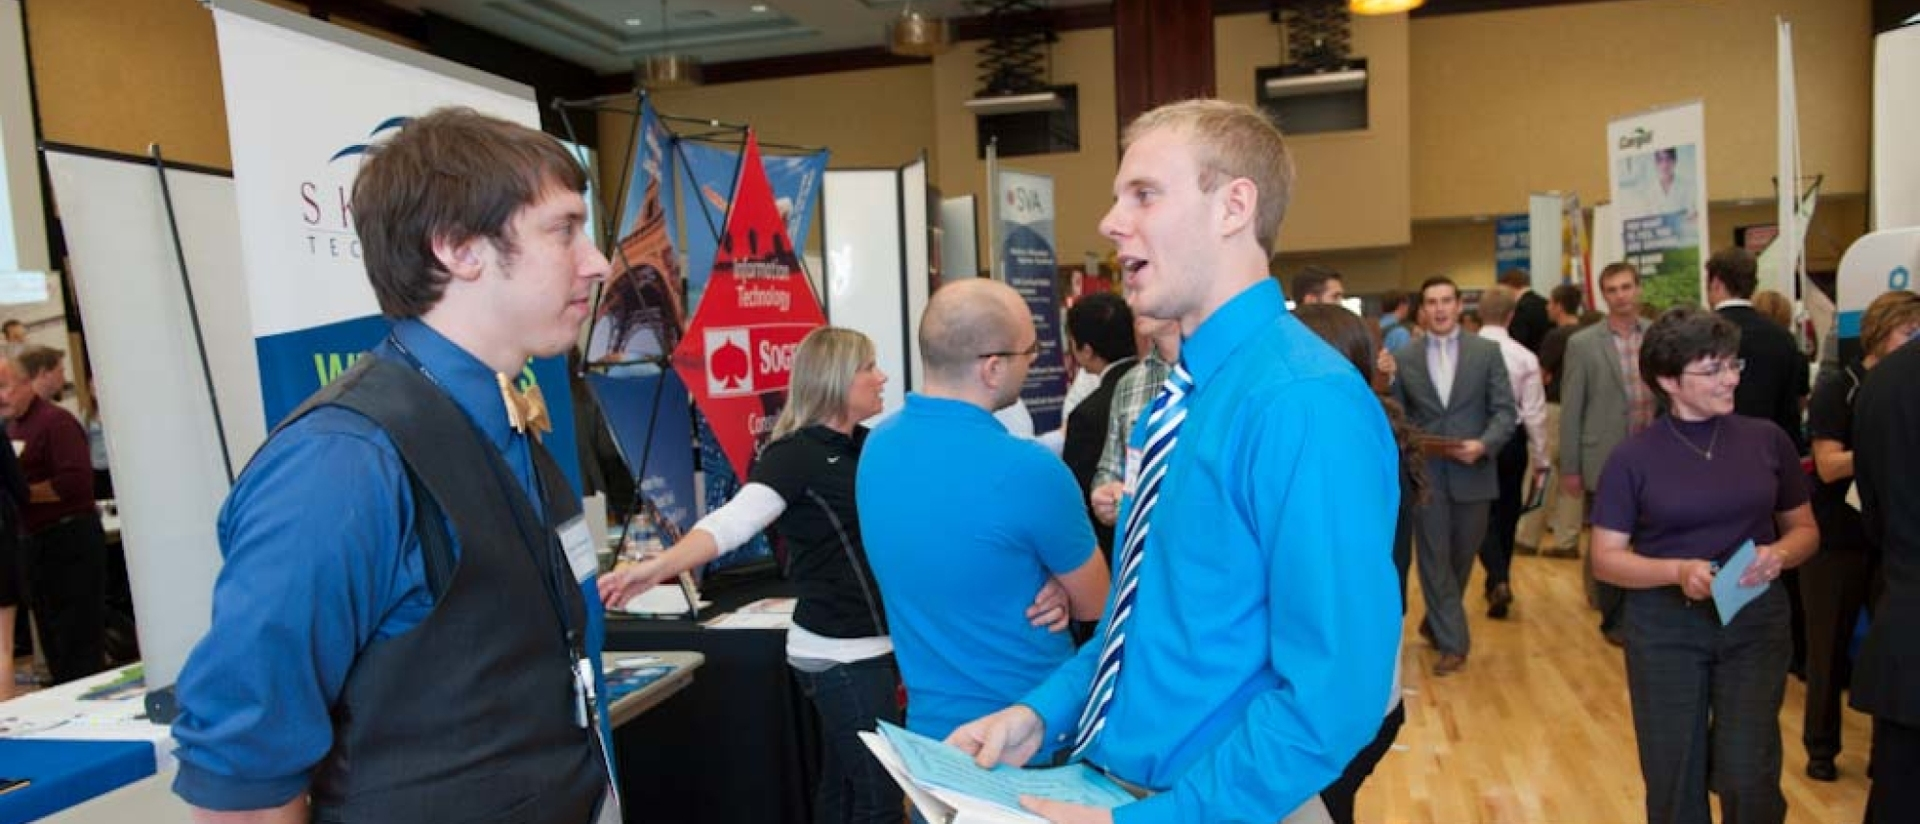 Student talking at job fair